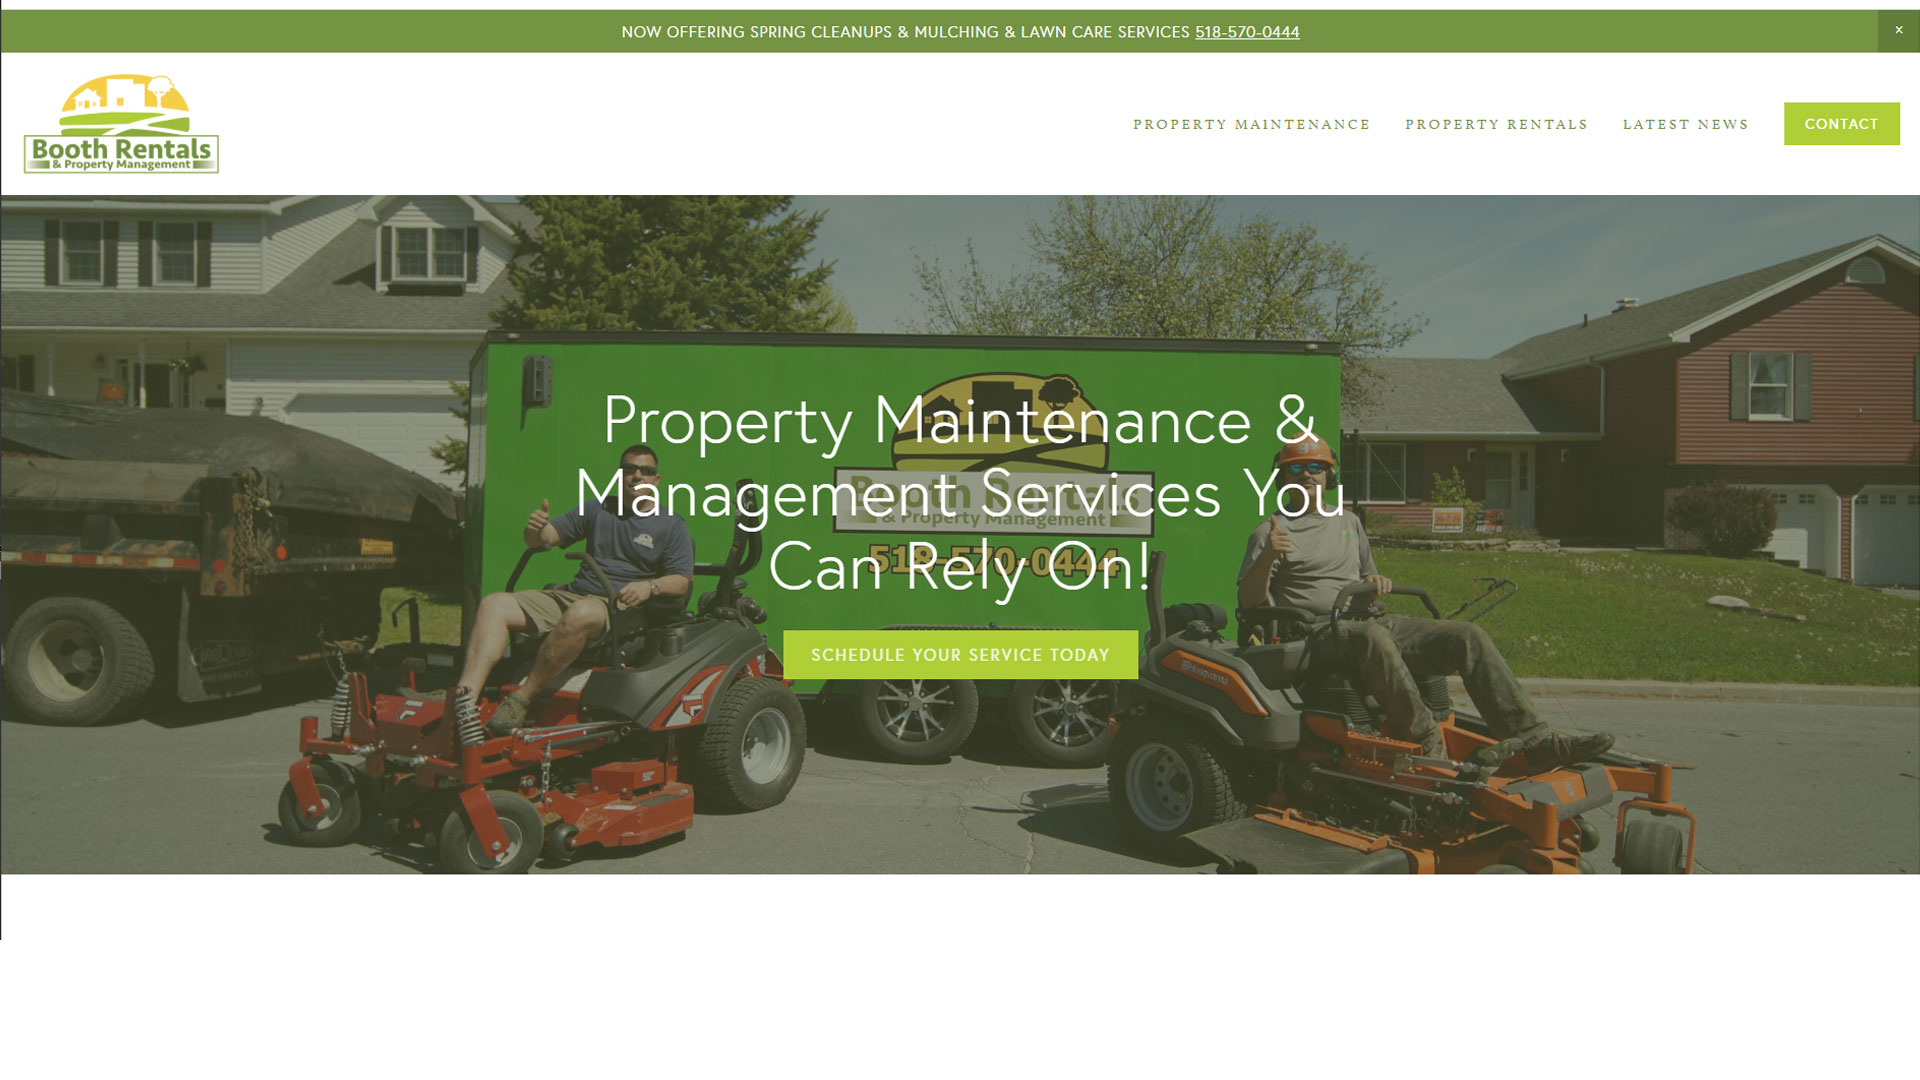 Booth Property Rentals and Property Maintenance